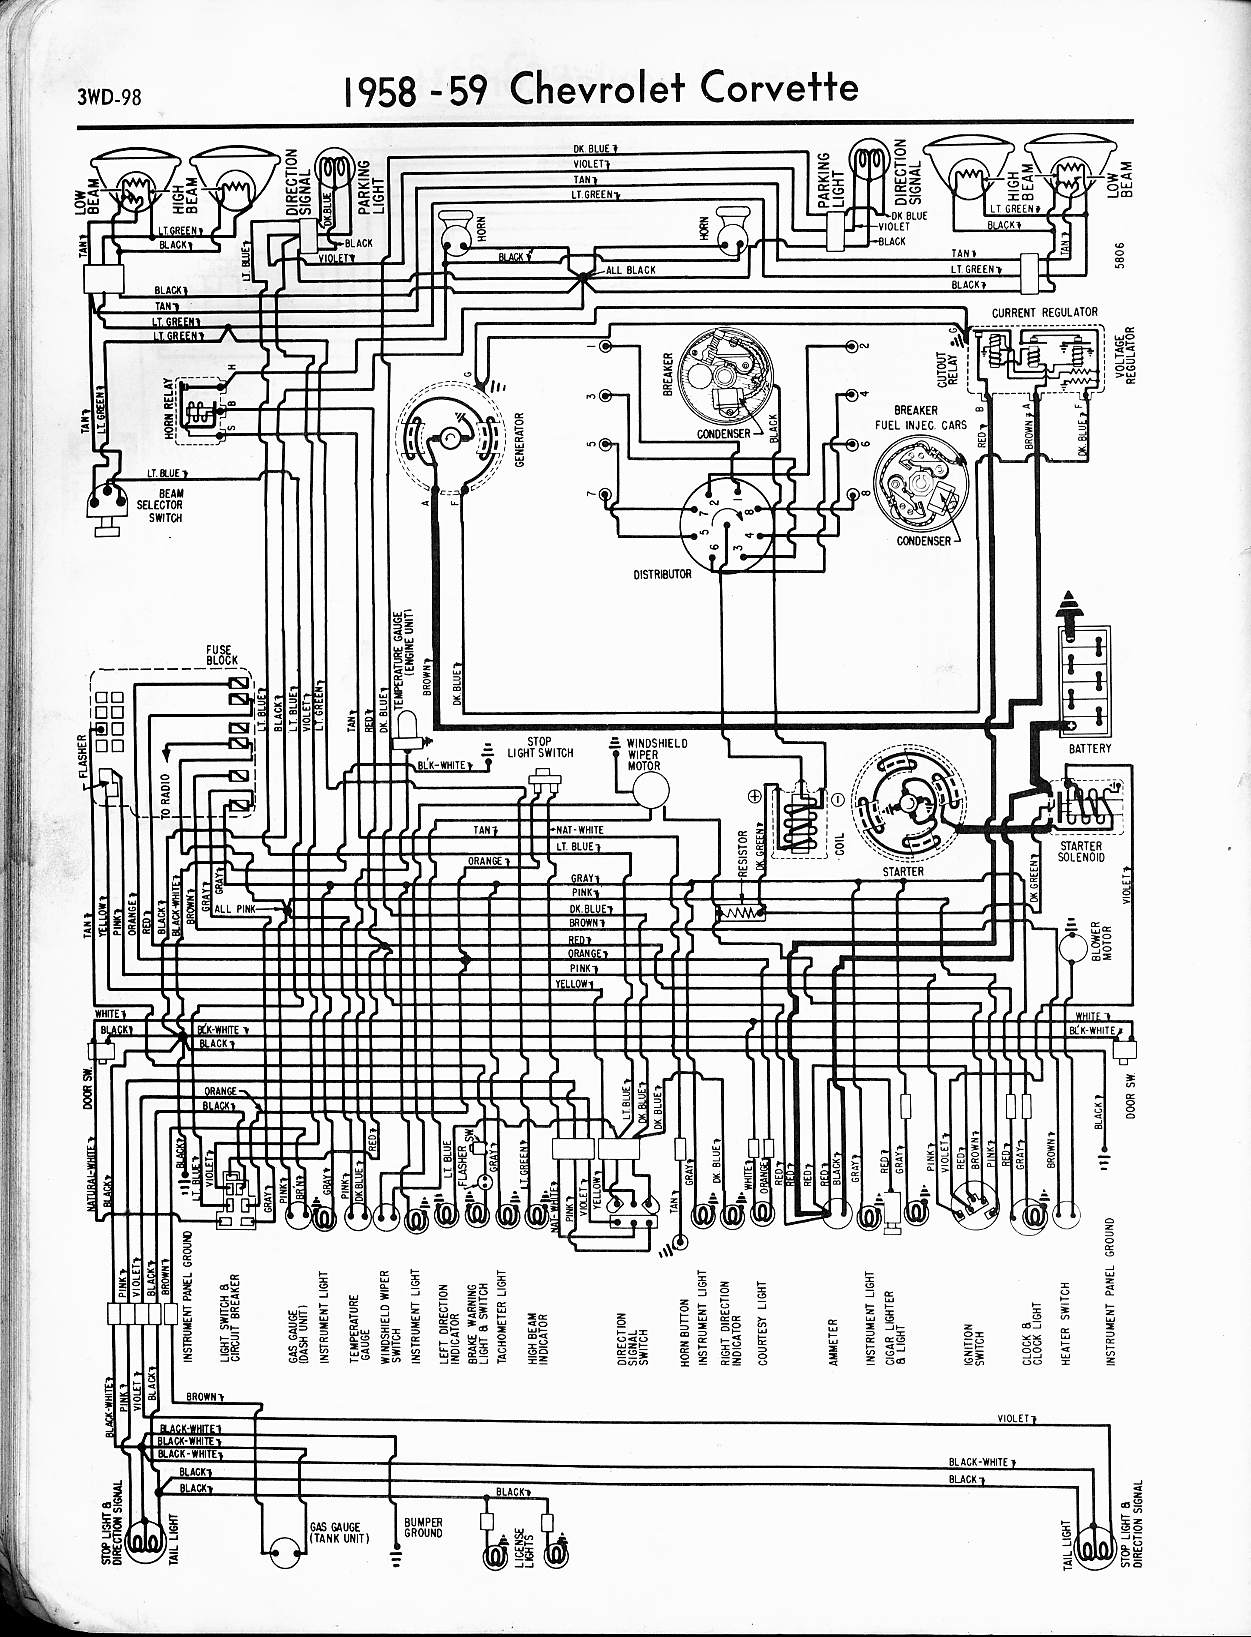 hight resolution of 1969 chevelle engine wiring wiring library57 65 chevy wiring diagrams 1969 chevelle wiring diagram 1965 chevelle